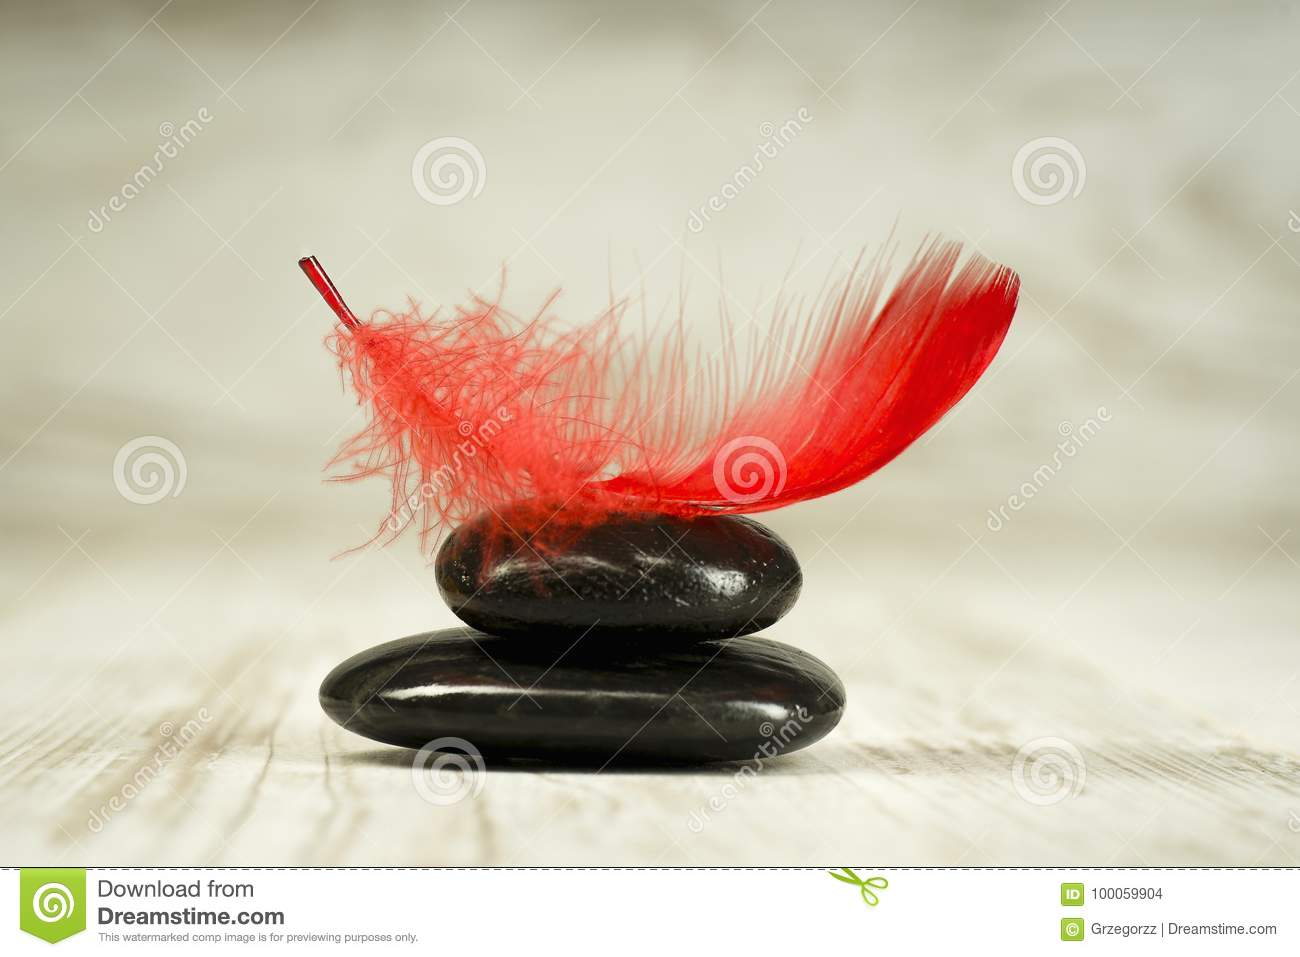 Red feather on black stones